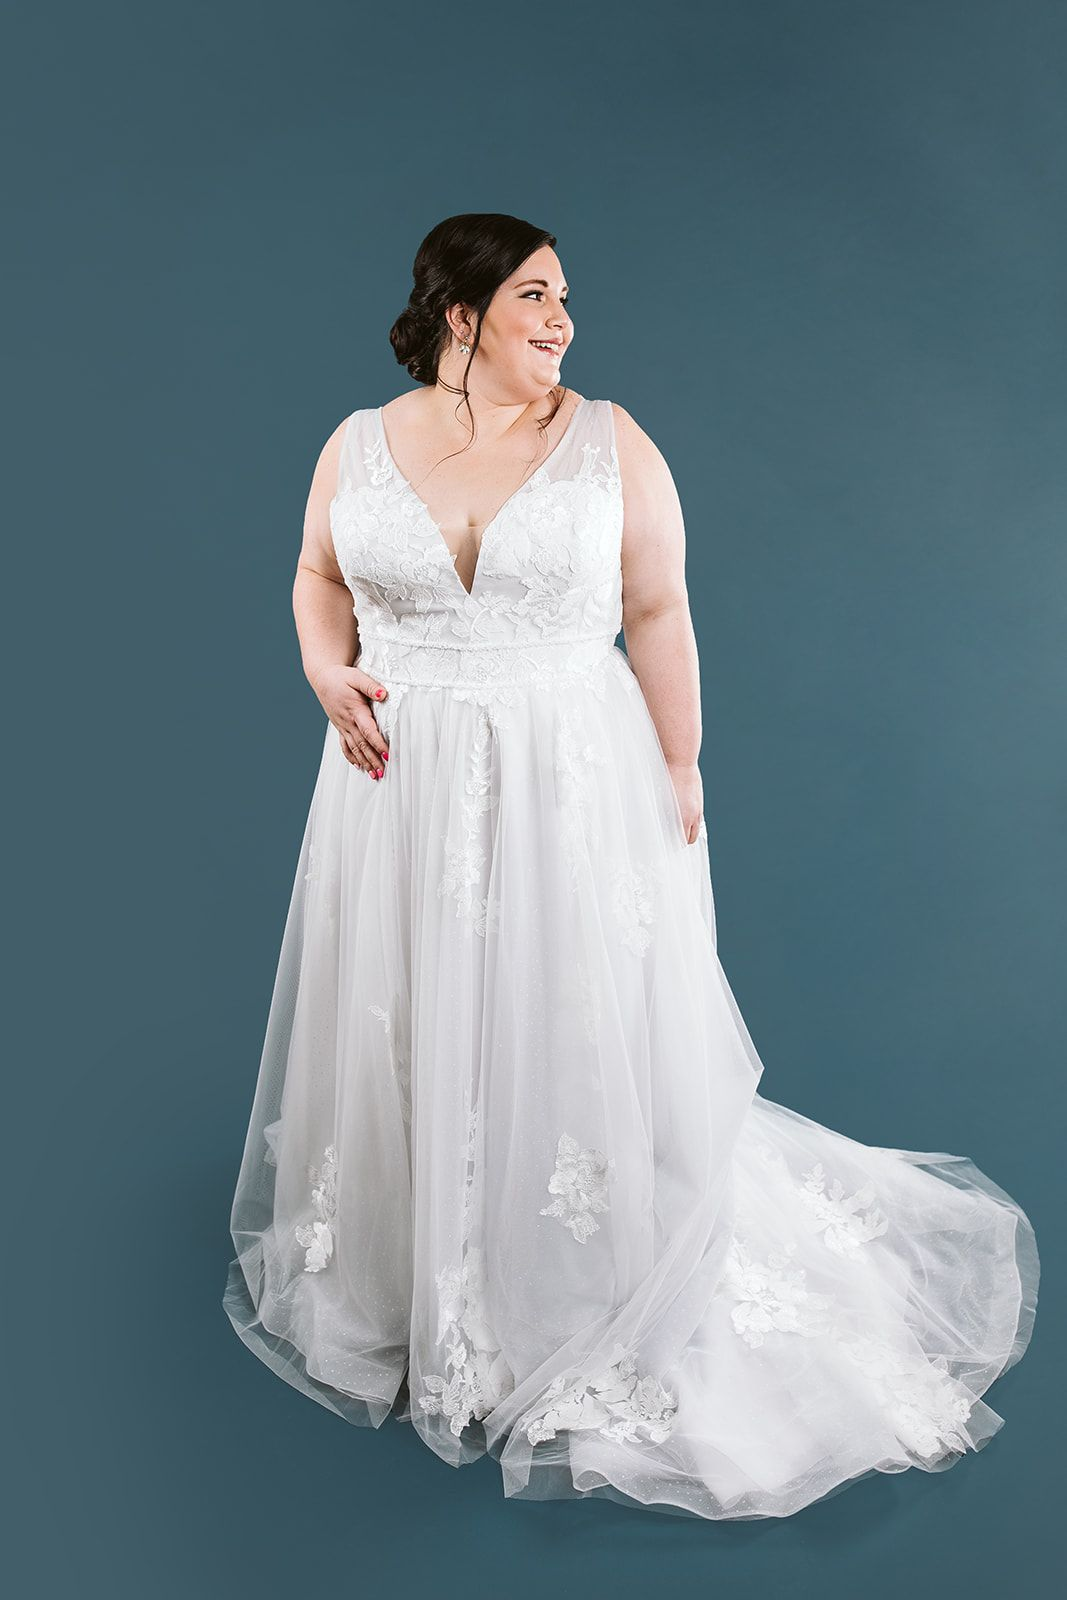 Lyla Amh Collection Only Available At All My Heart Bridal Plus Size Wedding Dresses En 2020 [ 1600 x 1067 Pixel ]